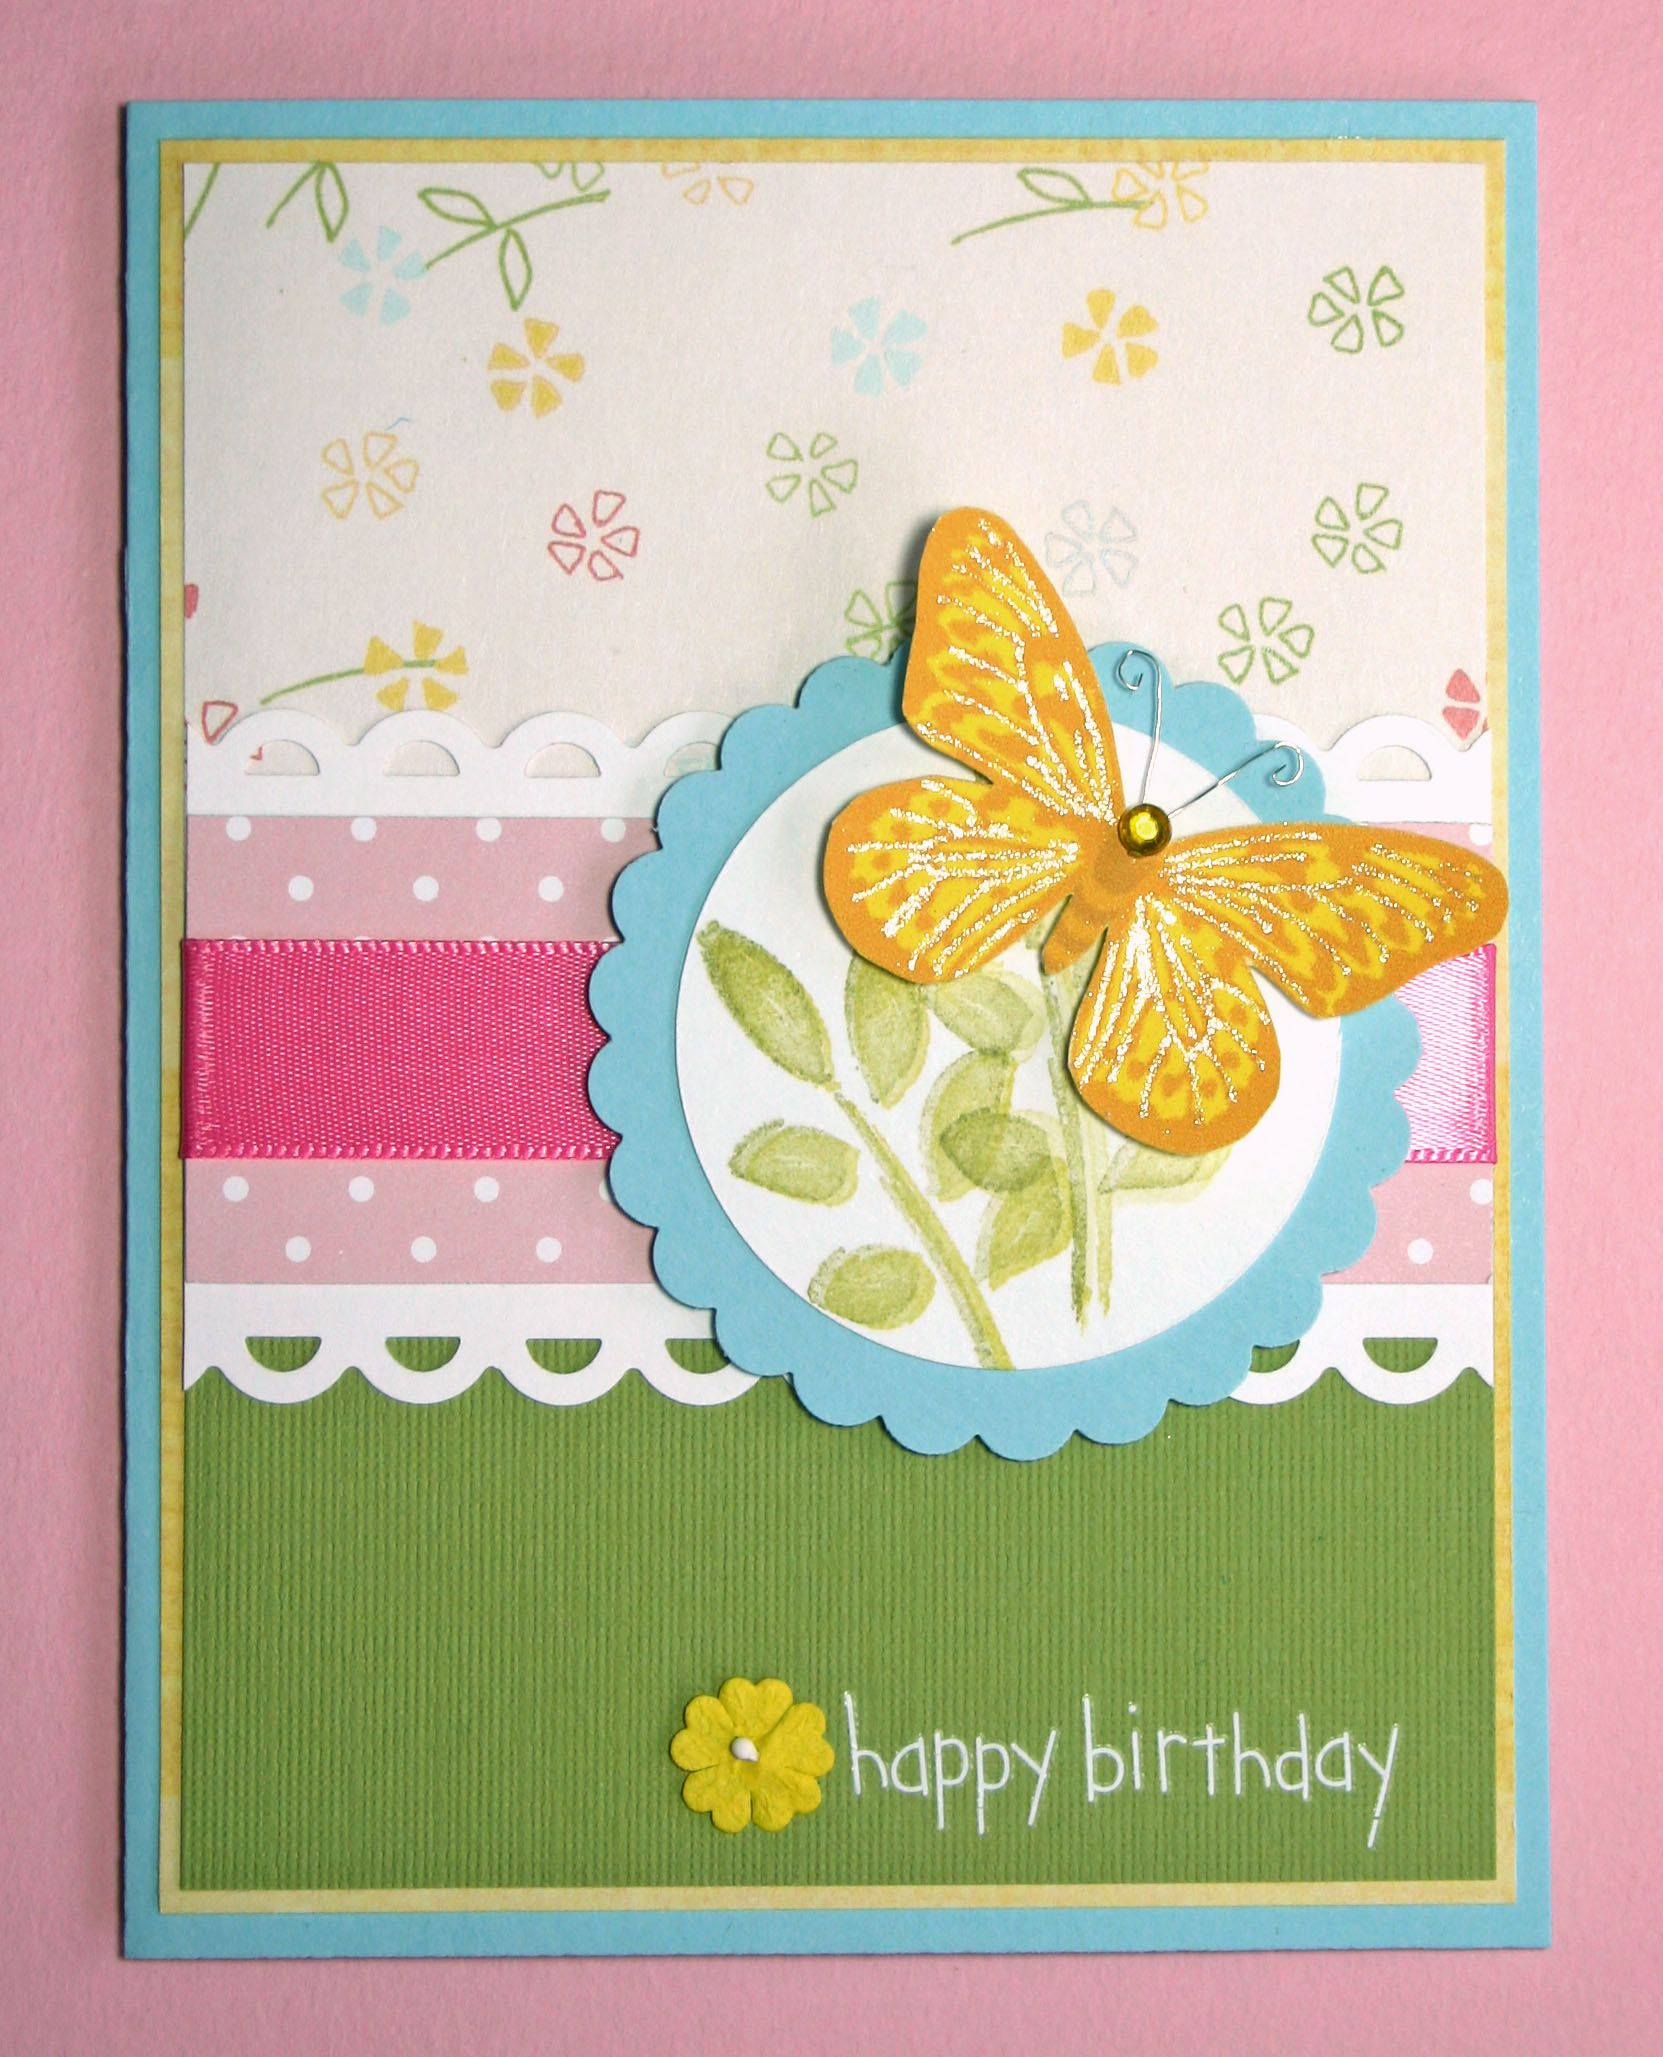 Homemade Birthday Cards Details about Handmade Card